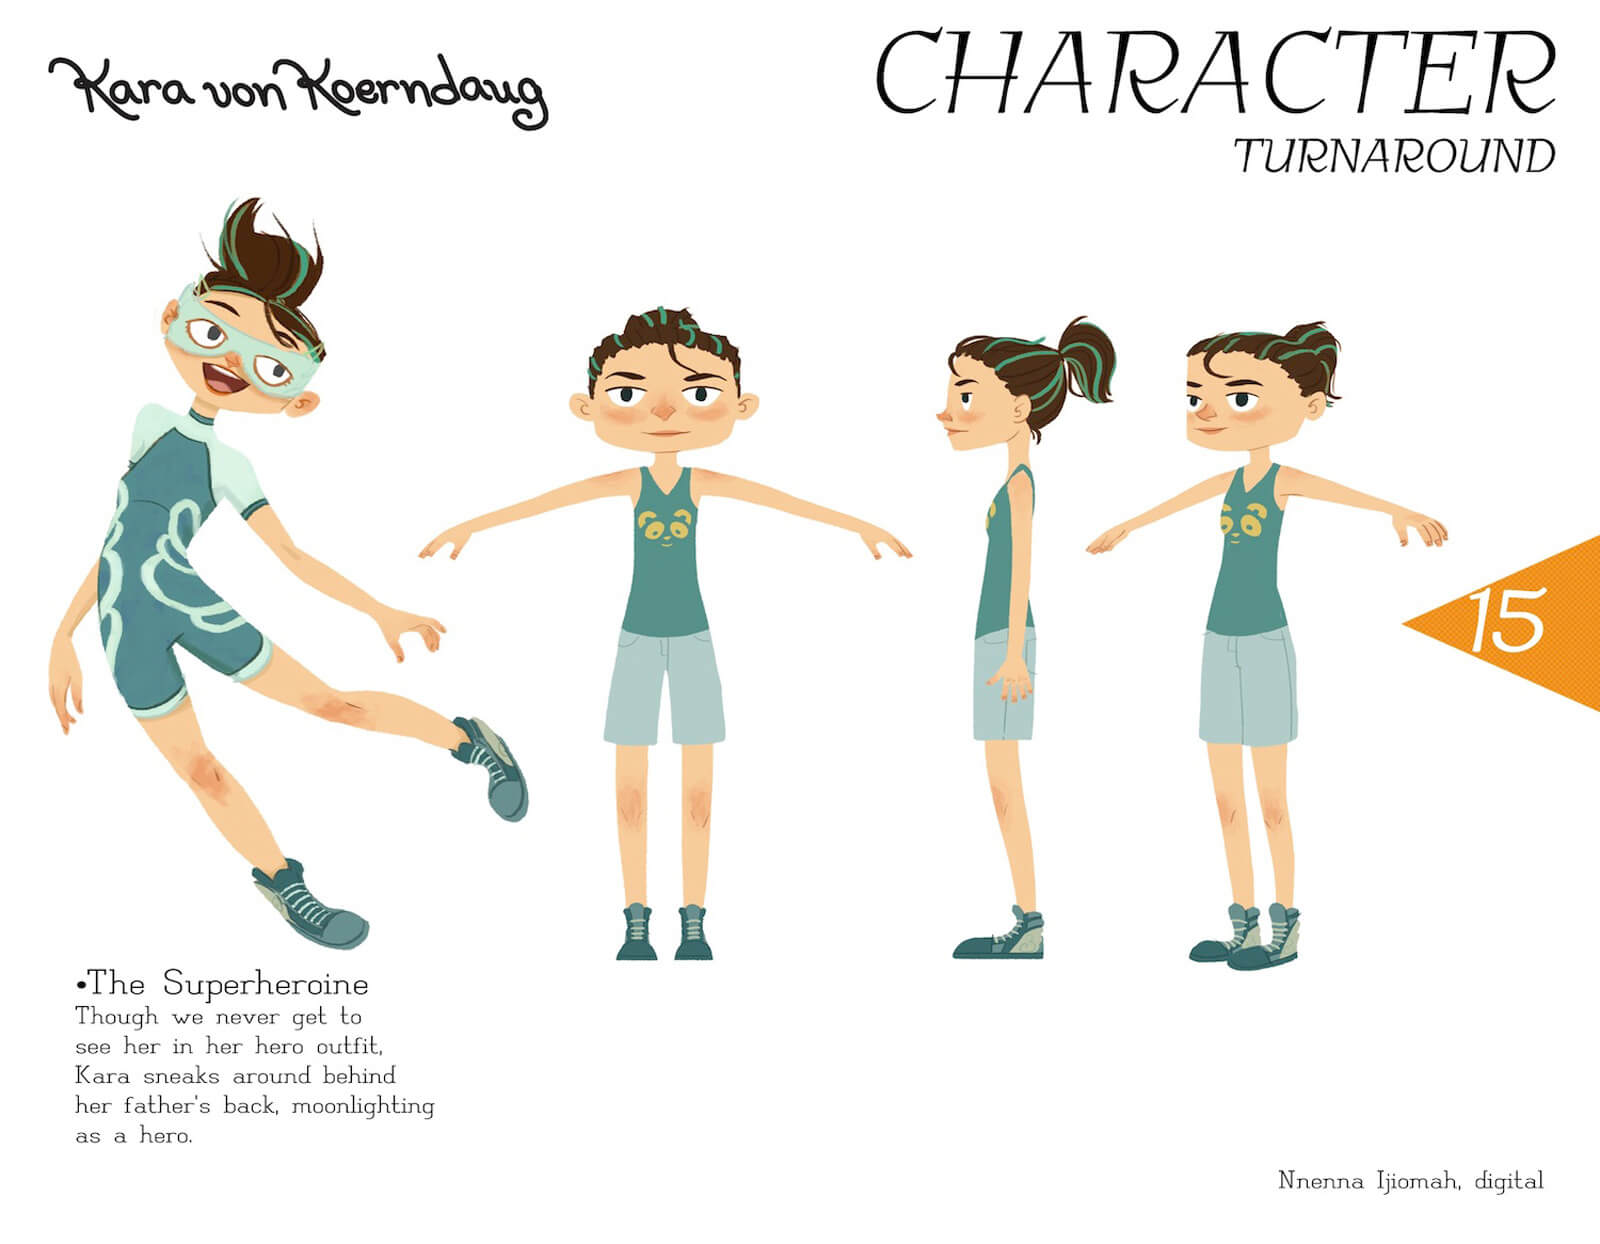 Character turnaround slide for Kara von Koerndaug, showing model from different angles and in superheroine dress